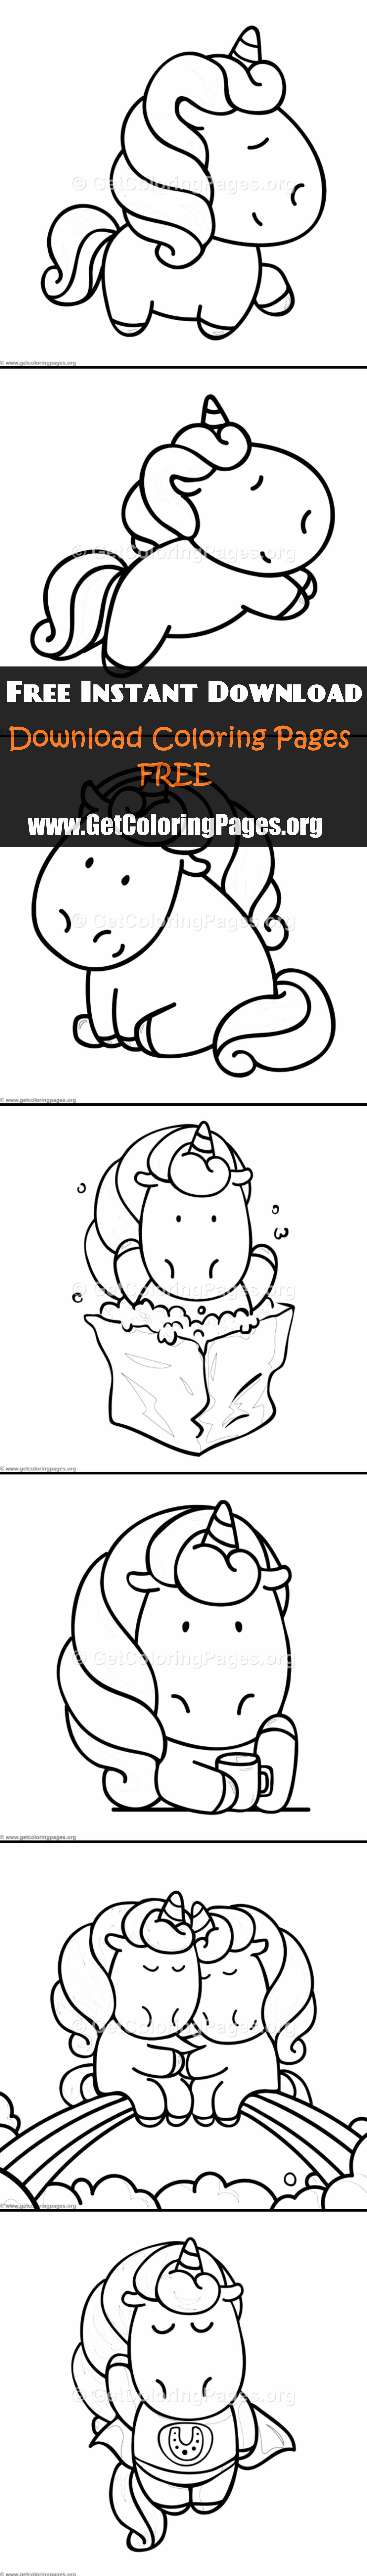 unicorn coloring,cute unicorn coloring pages,unicorn coloring pages ...